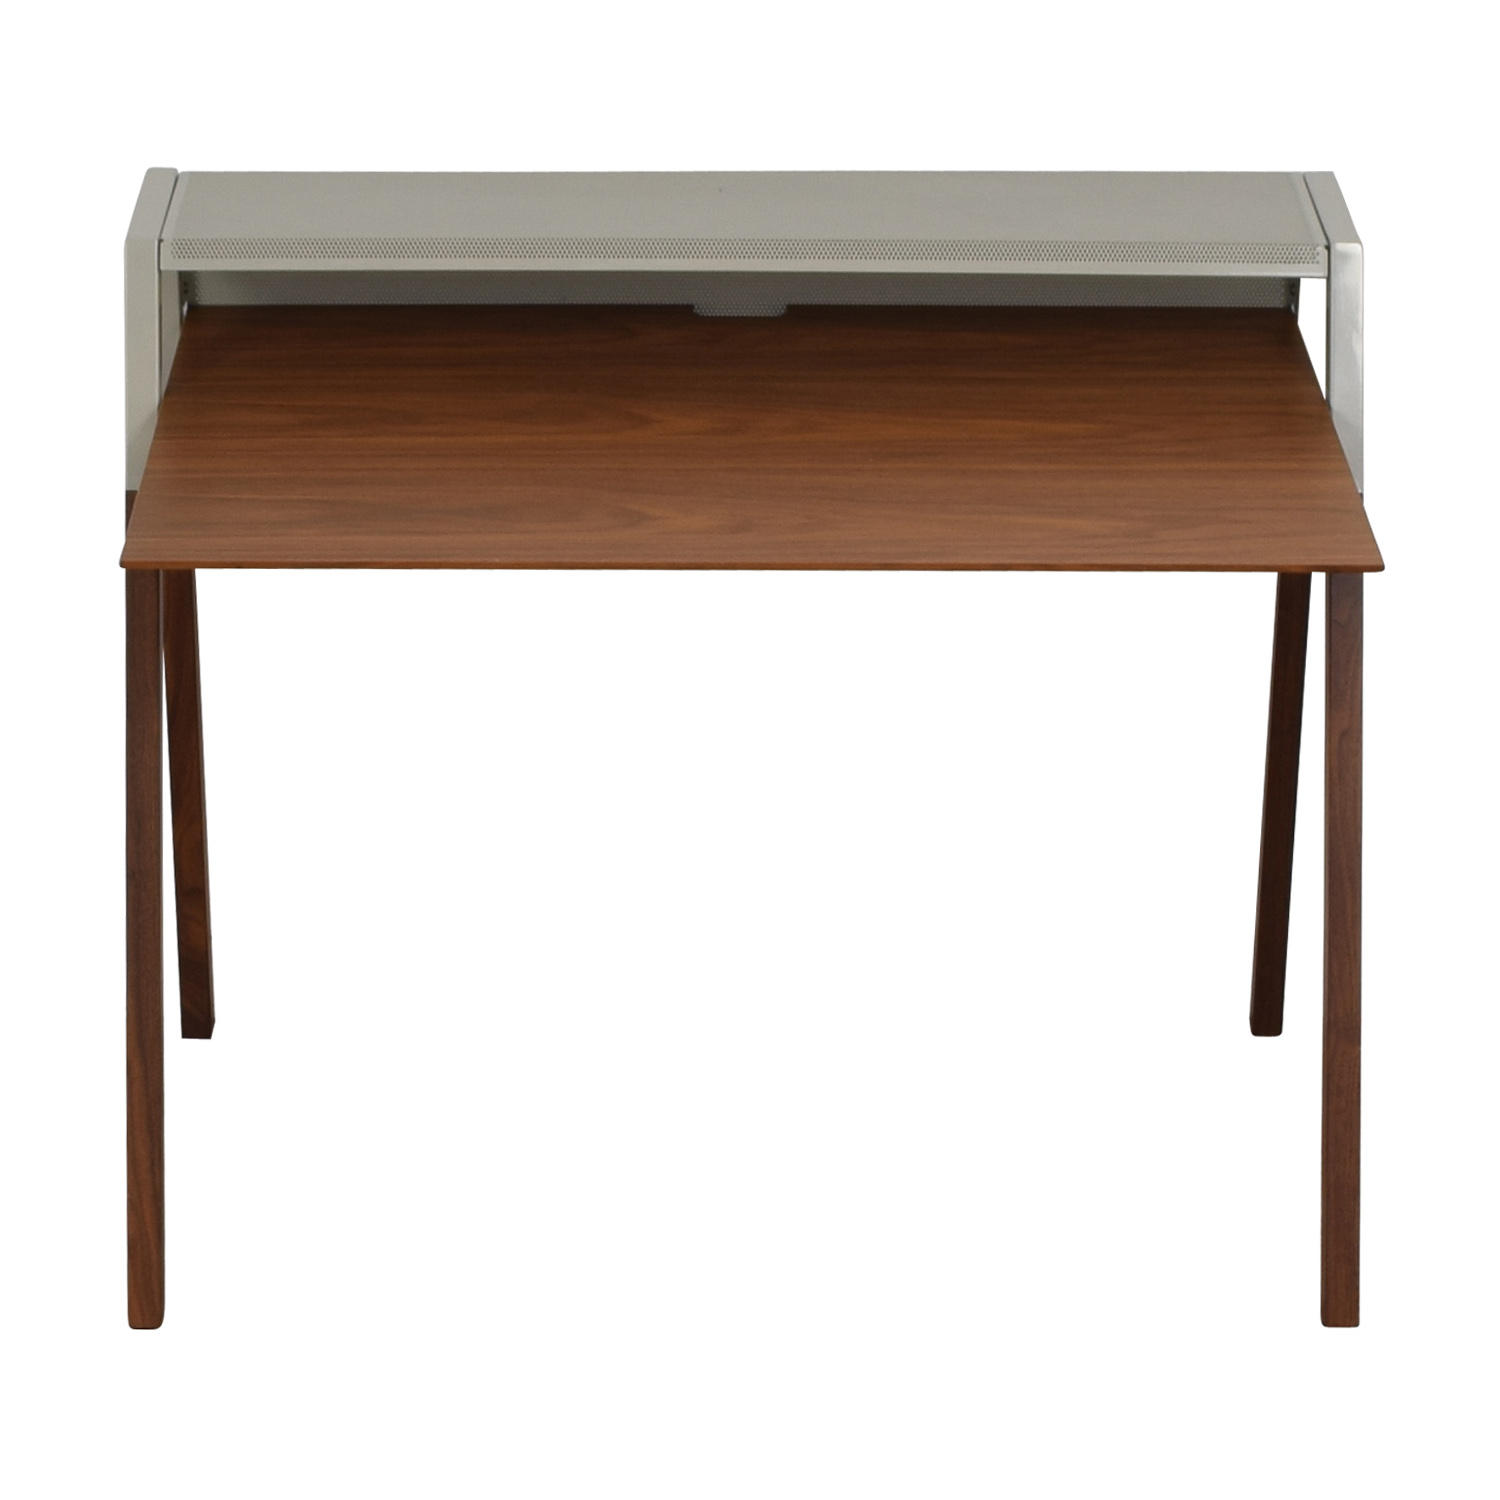 tables for home office. Blu Dot Cant Walnut And Grey Desk Price Tables For Home Office O